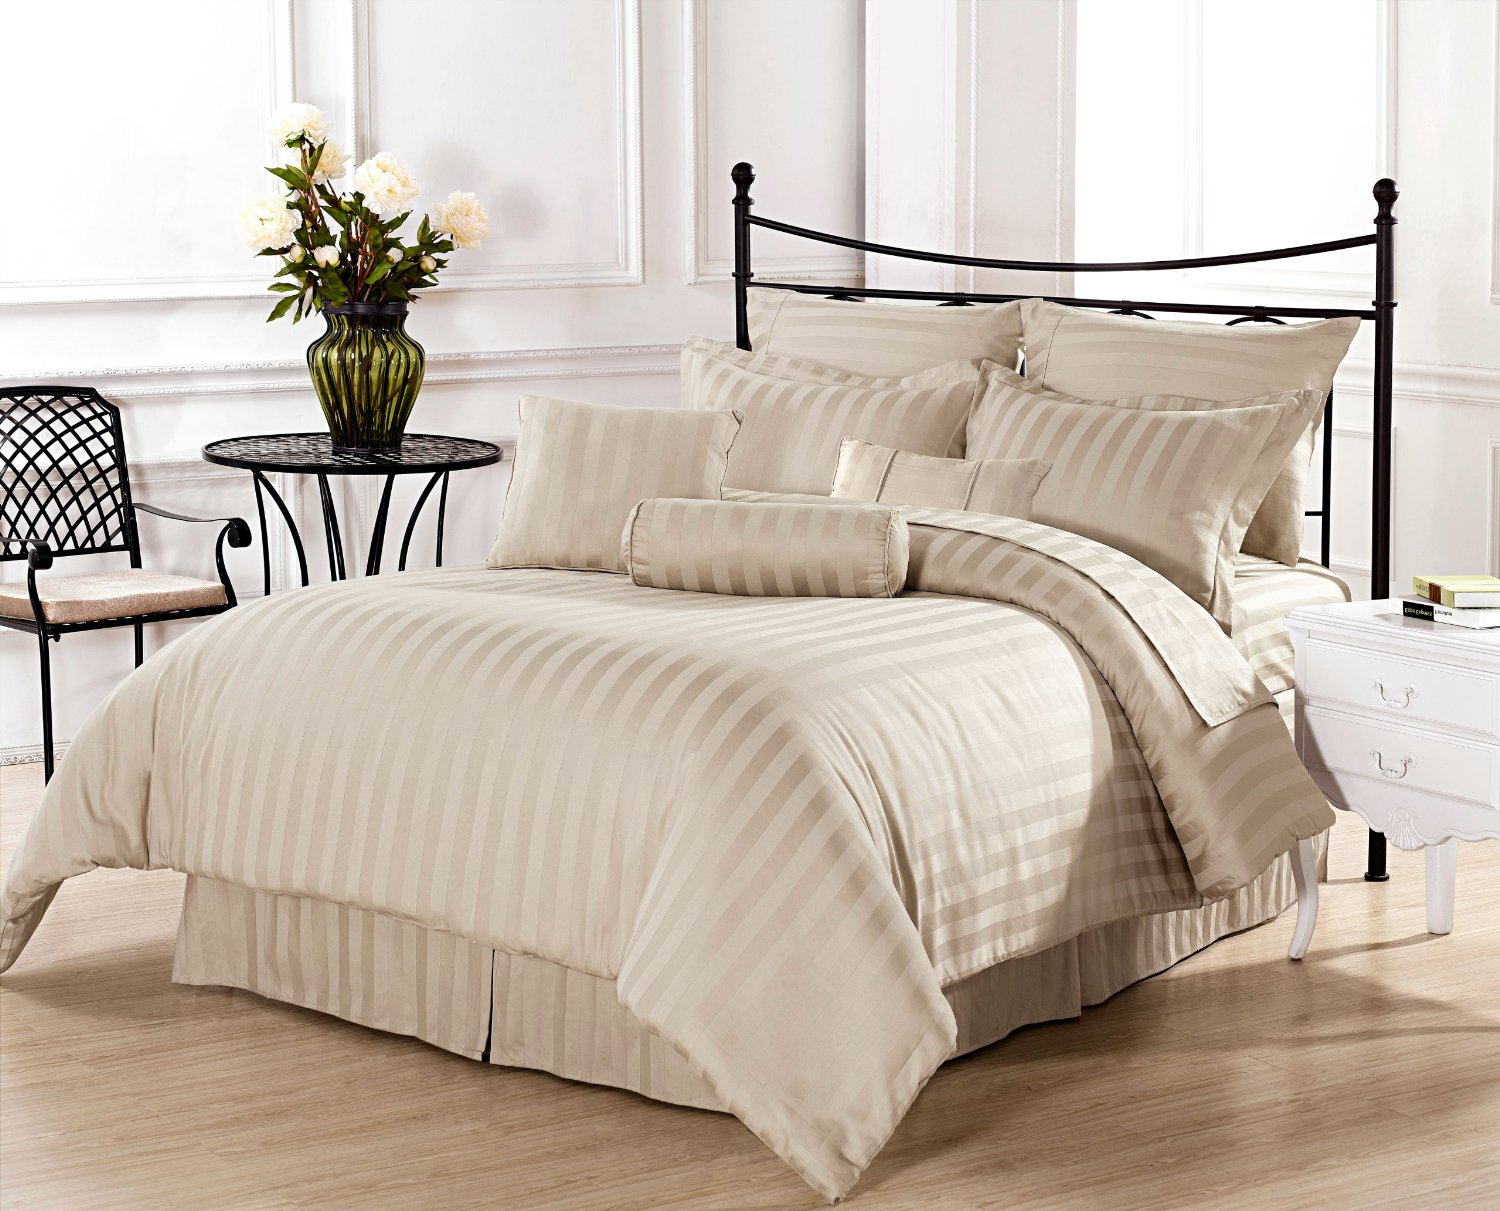 beige and white bedding products for creating warm and elegant  - simple beige and white bedding set idea